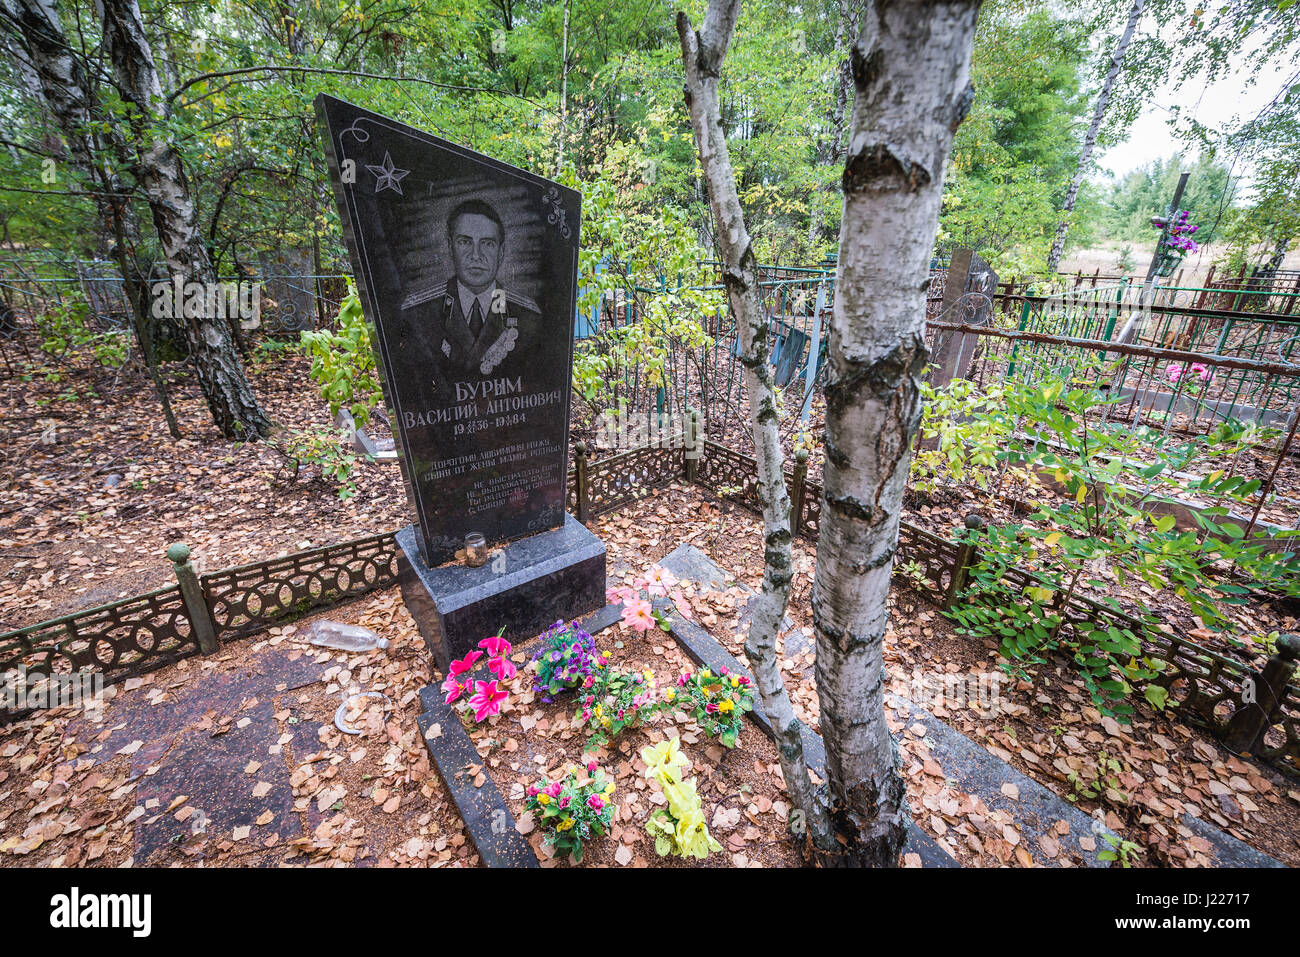 Grave on cemetery in Pripyat ghost city of Chernobyl Nuclear Power Plant Zone of Alienation around nuclear reactor - Stock Image